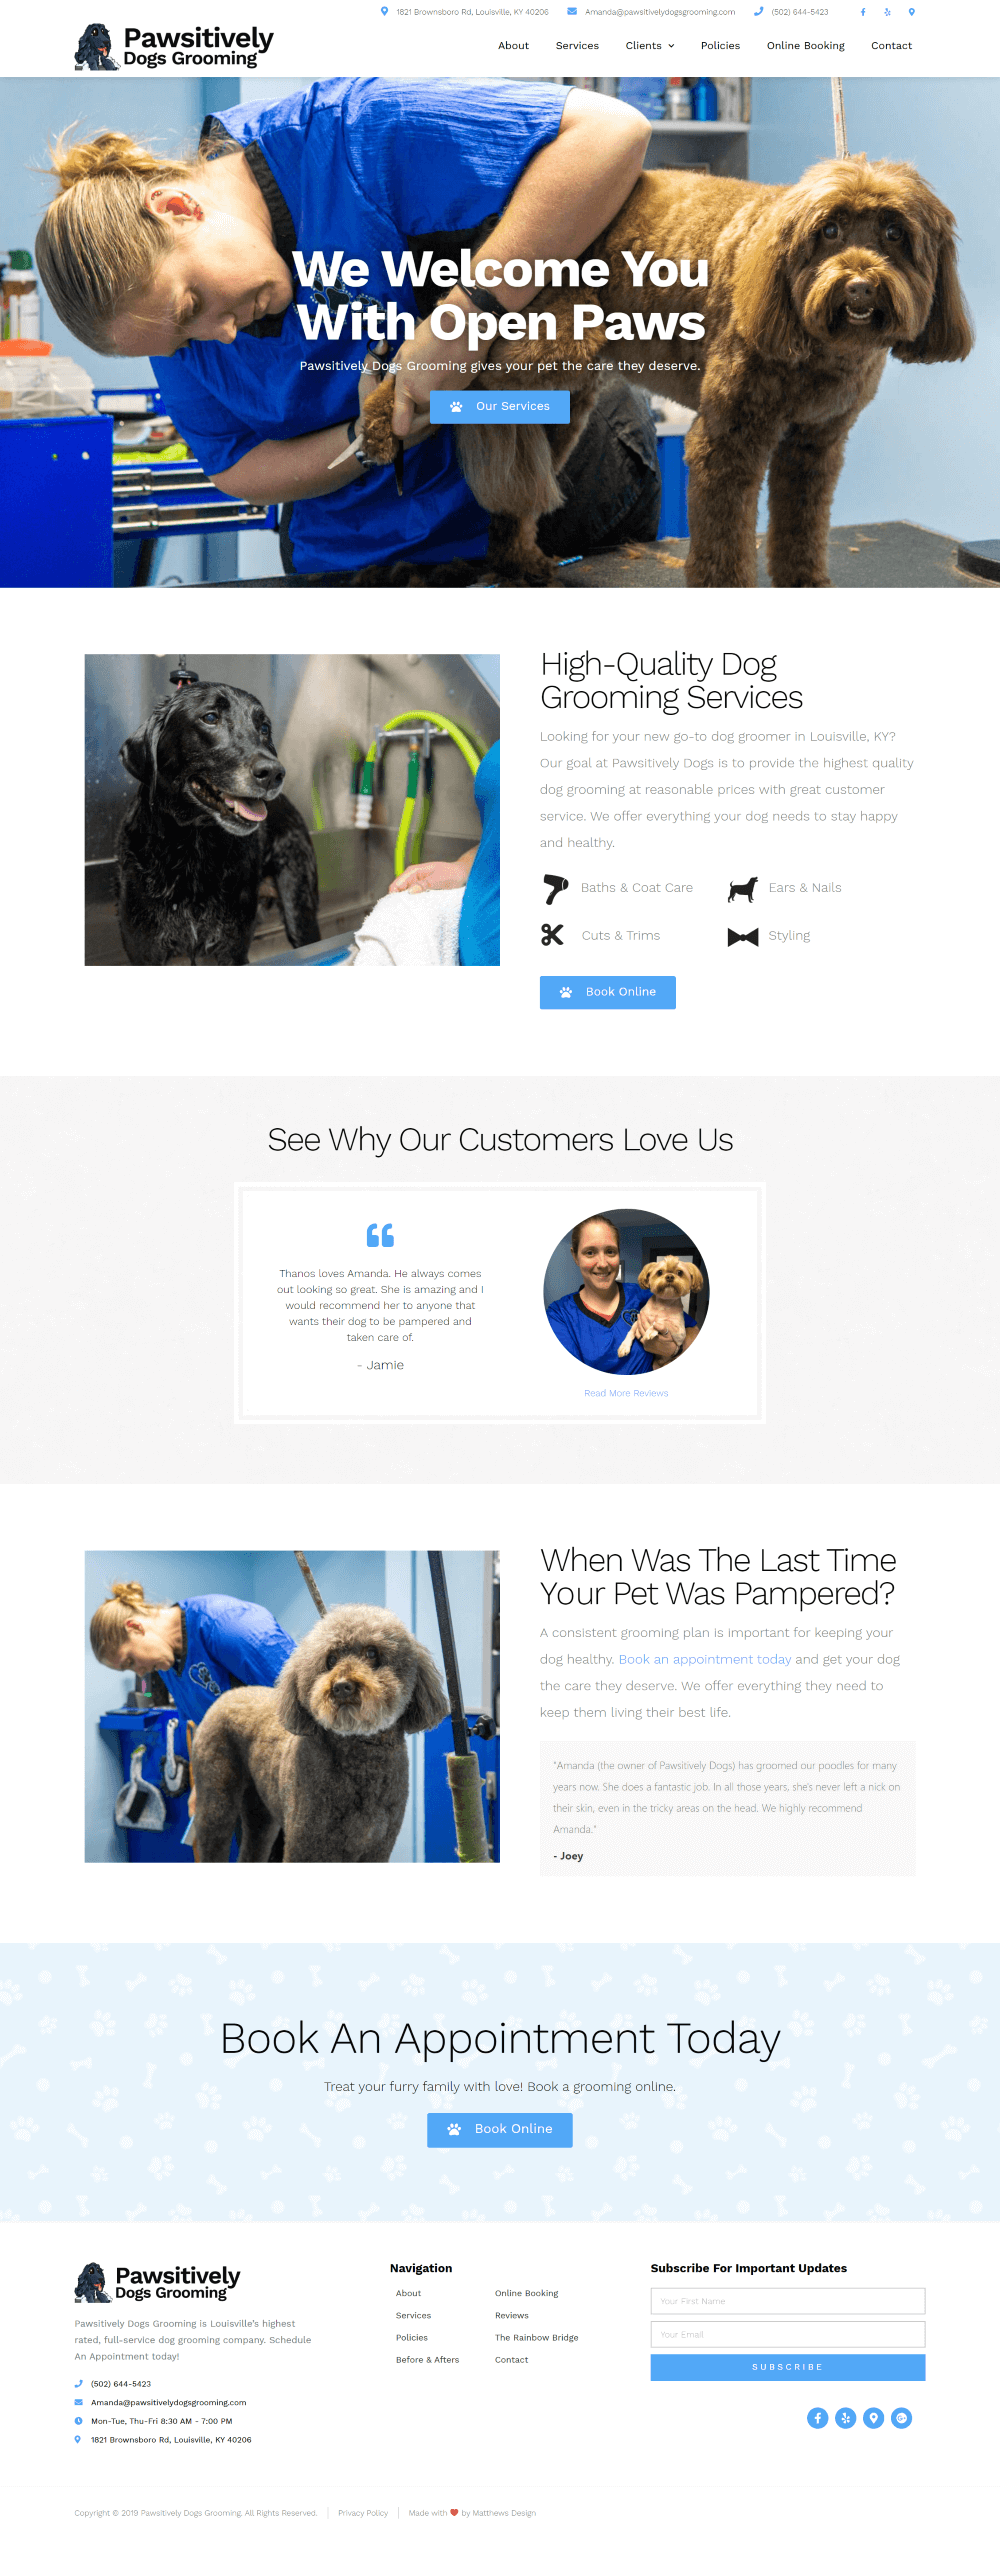 Pawsitively Dogs Grooming by Matthews Design